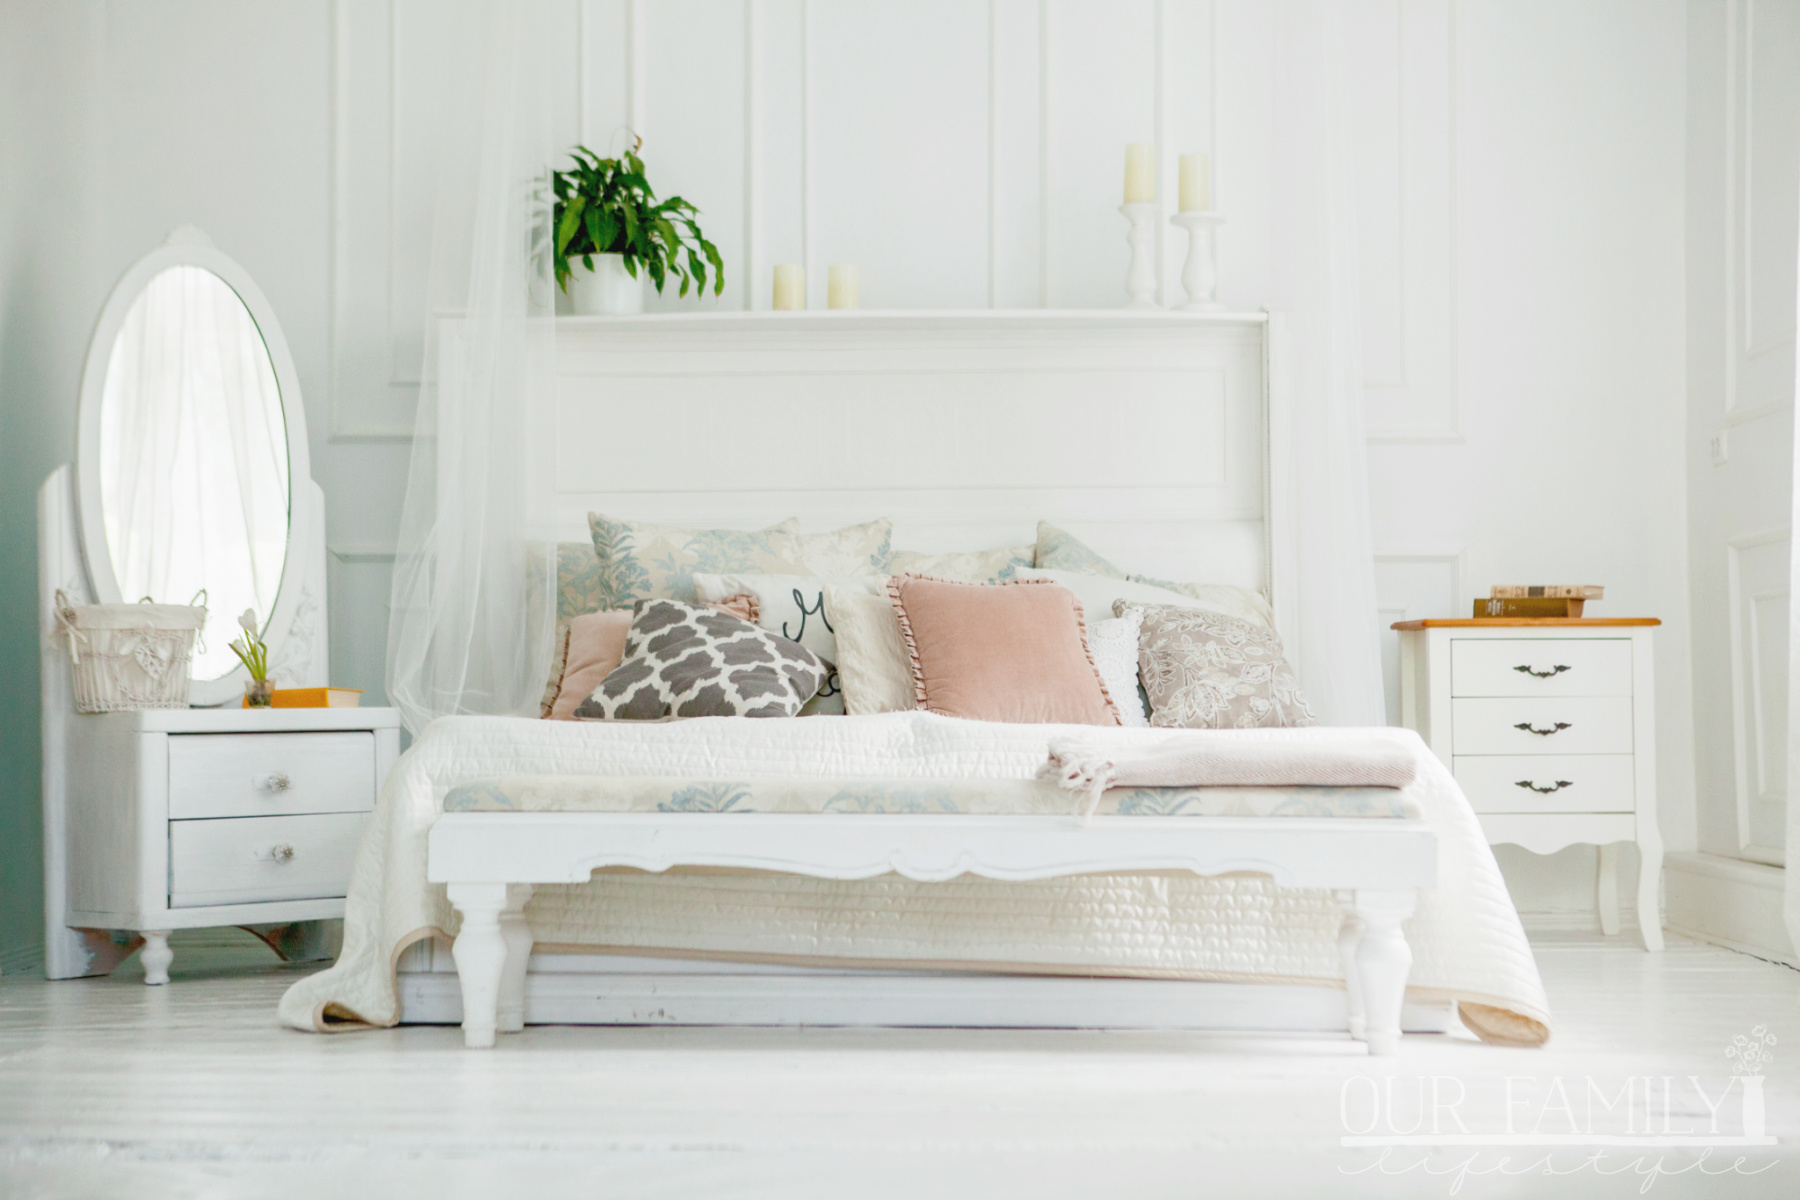 Scandinavian style white bedroom. Four pillows are on the bed. Modern interior.